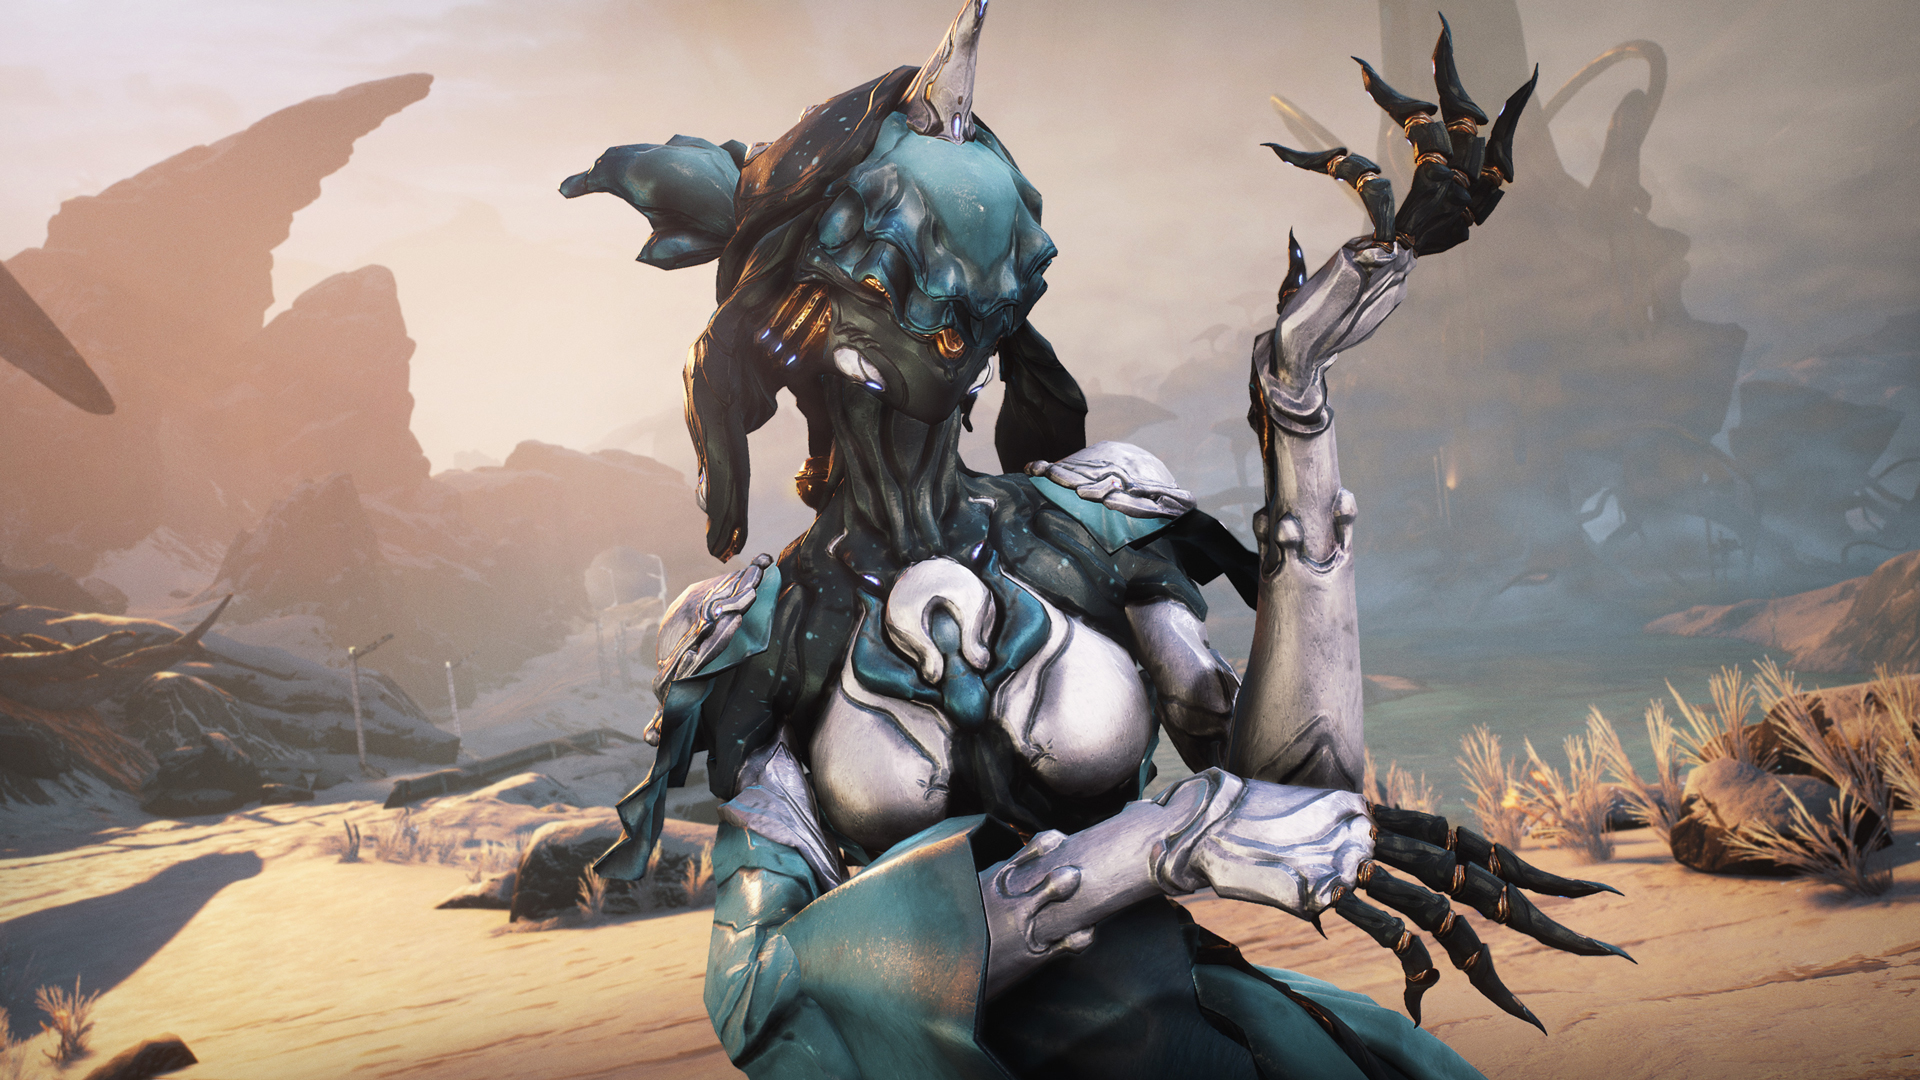 Warframe's pirate radio host is back with Nightwave: Nora's Choice